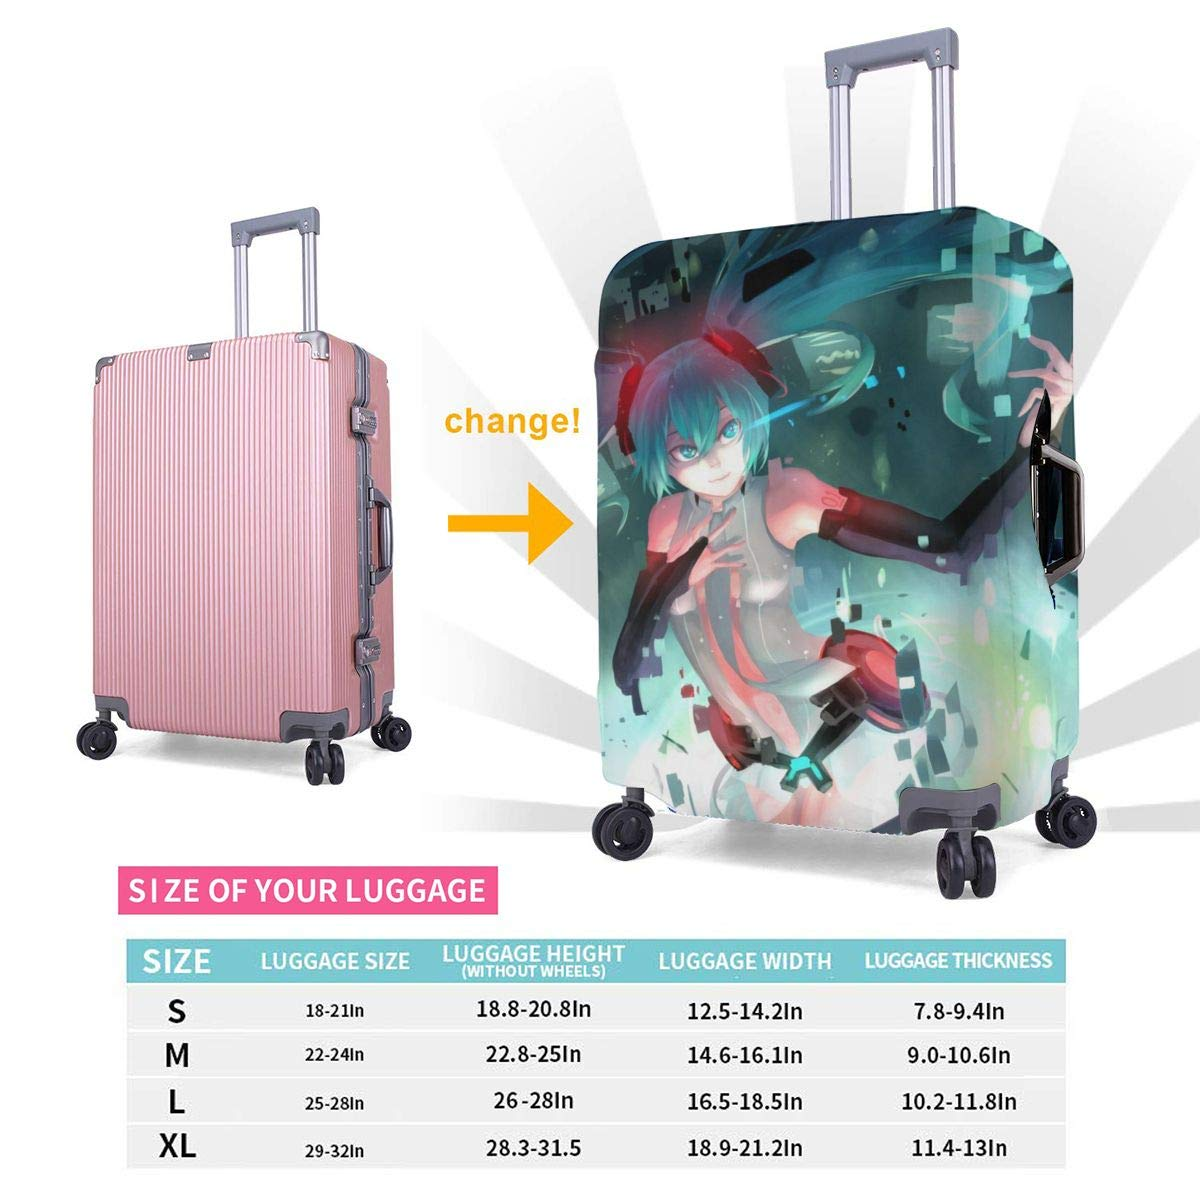 Travel Luggage Cover Vocaloid Hatsune Miku Heart Girl Travel Luggage Cover Suitcase Protector Fits 26-28 Inch Washable Baggage Covers